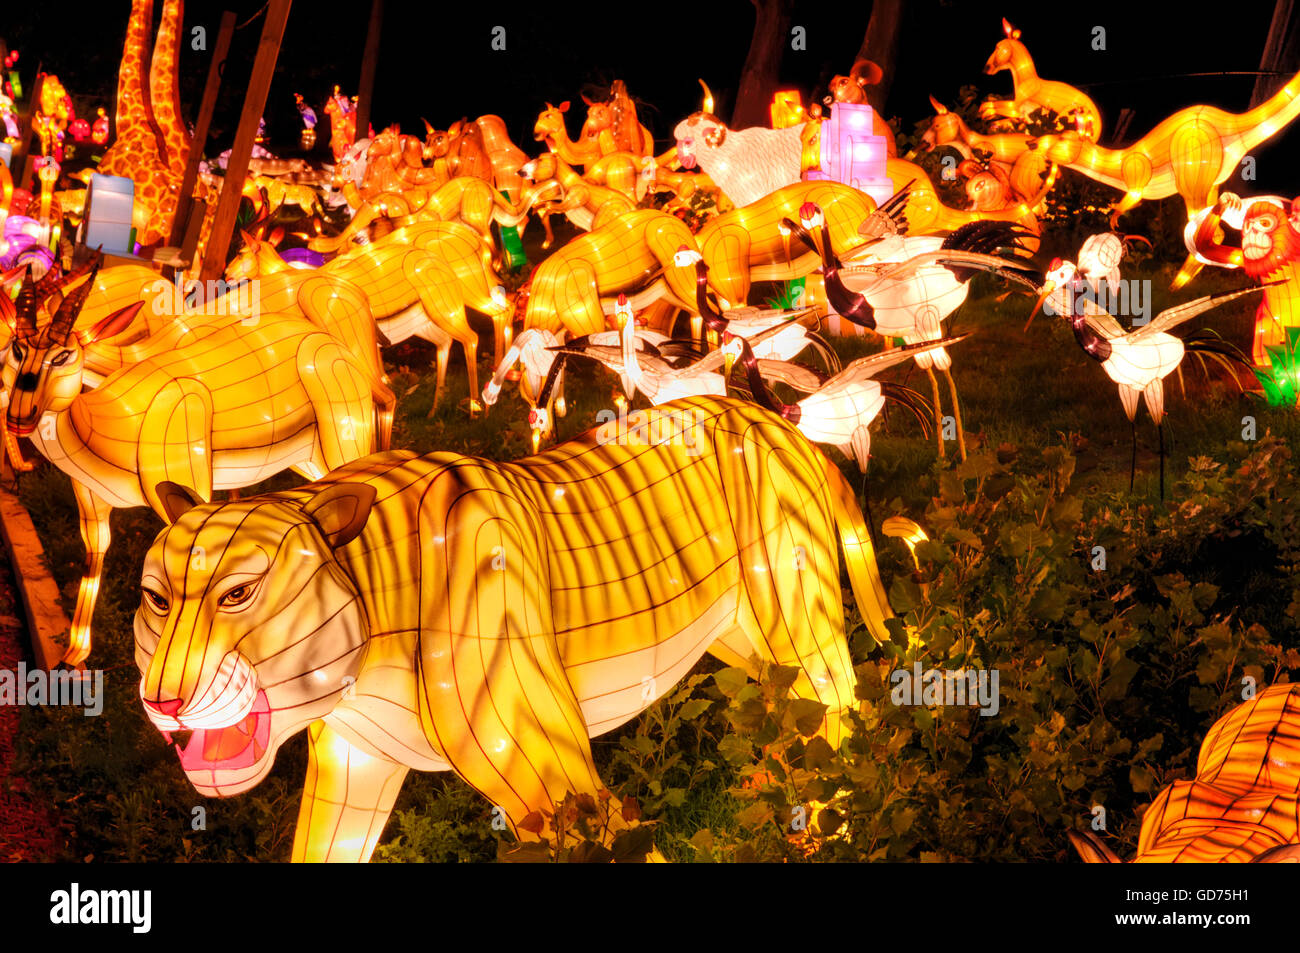 Group of different animals, illumination at the Chinese Lantern Festival, at night, Ontario Place, Toronto, Ontario, - Stock Image